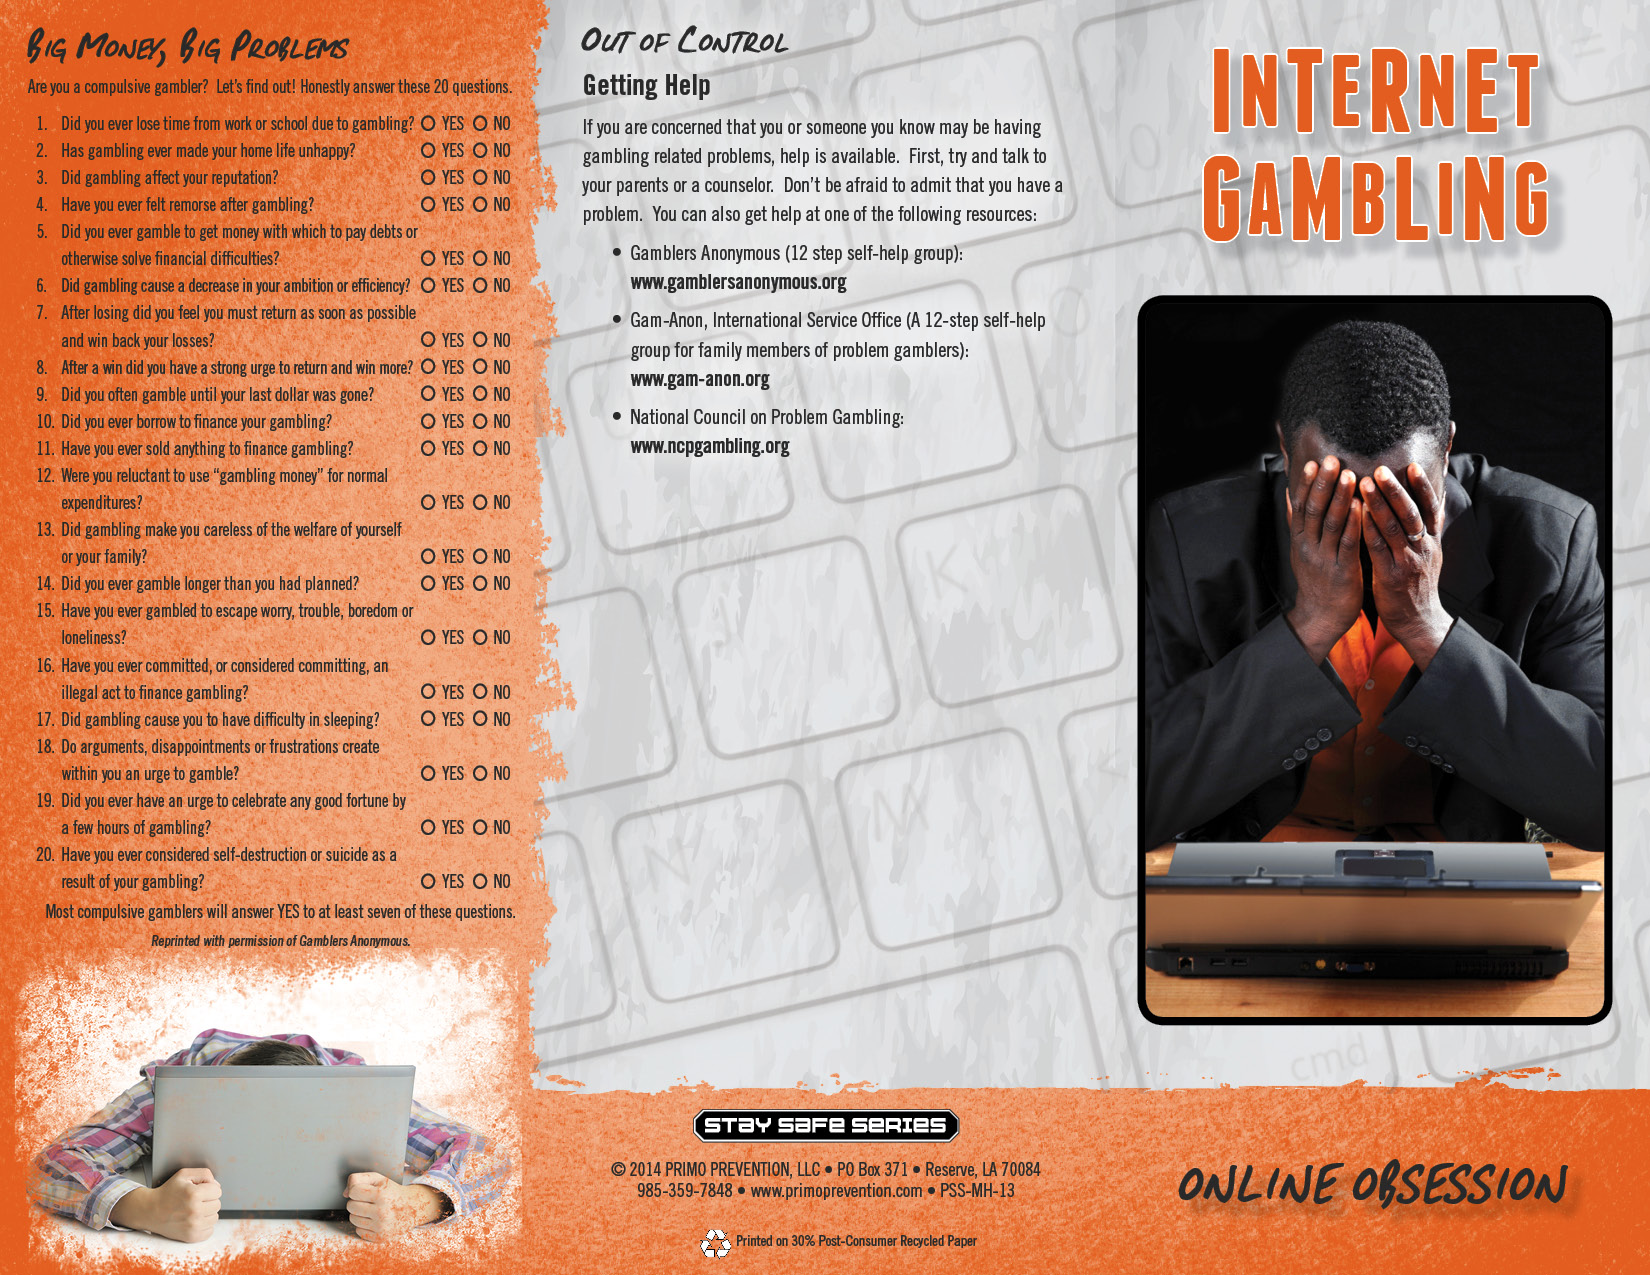 Internet Gambling: Online Obsession Pamphlet